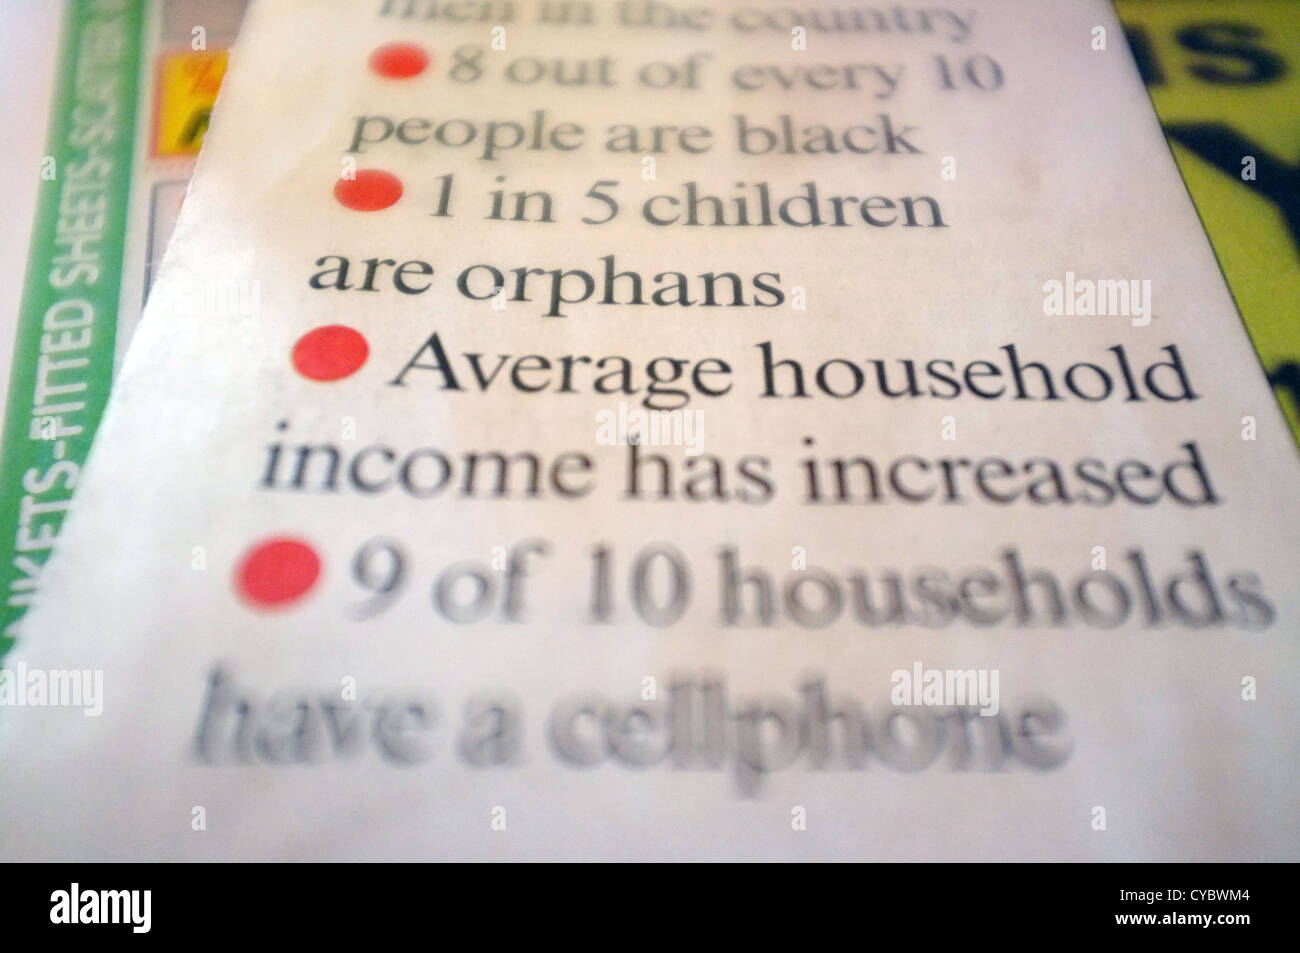 A list of census bullet points about the average household. - Stock Image